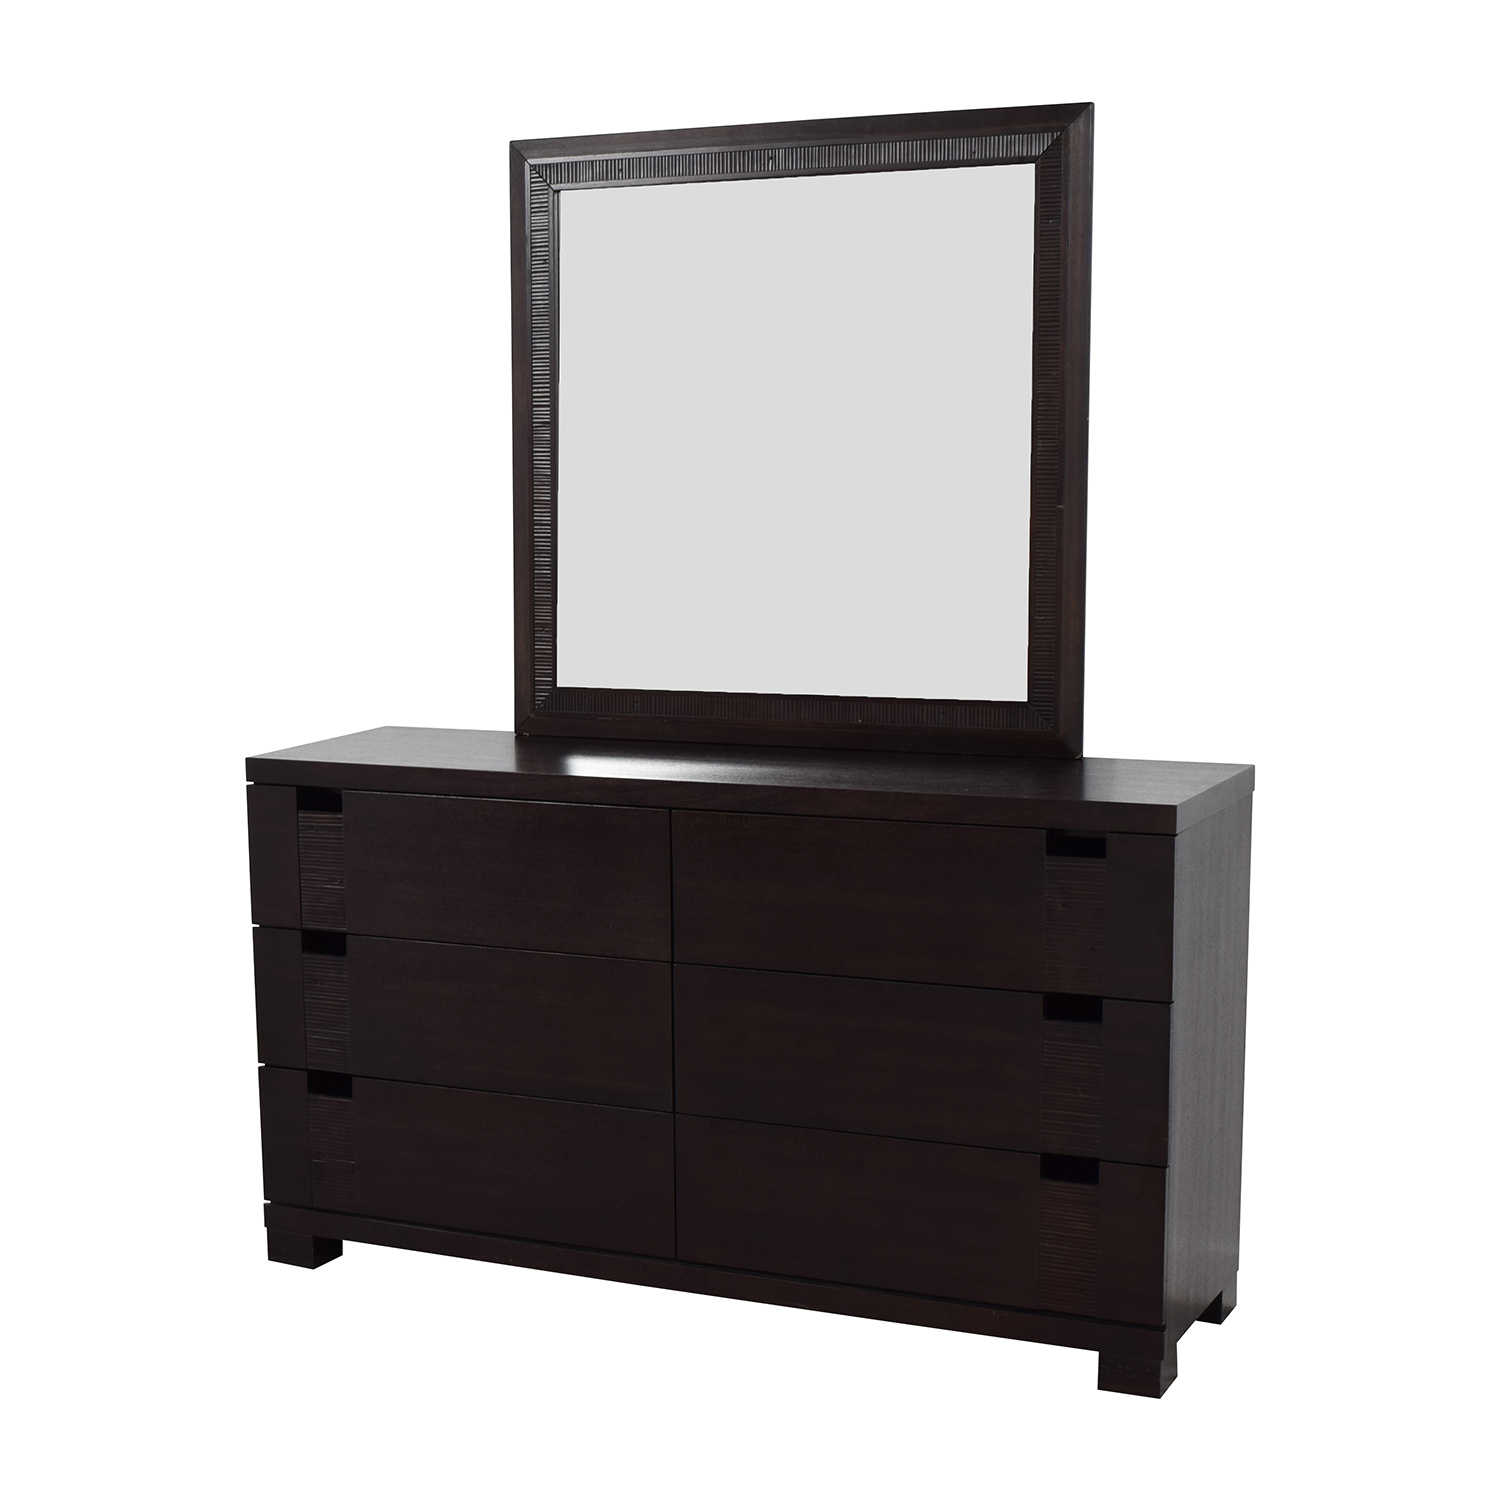 buy The Door Store Dark Brown Wooden Six-Drawer Dresser with Mirror The Door Store Storage